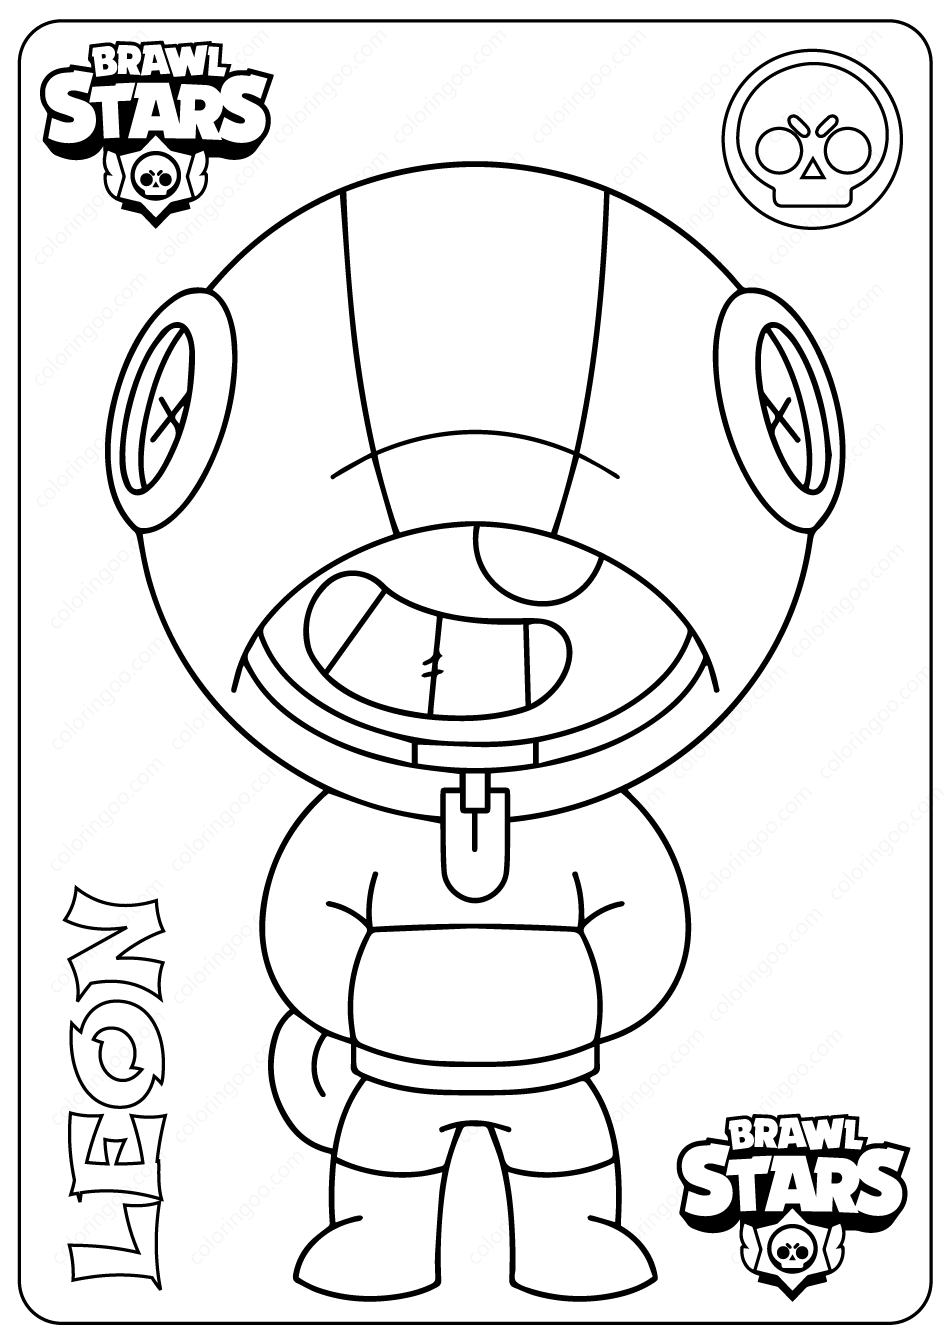 Printable Brawl Stars Leon Pdf Coloring Pages Coloring Pages Star Outline Free Printable Coloring